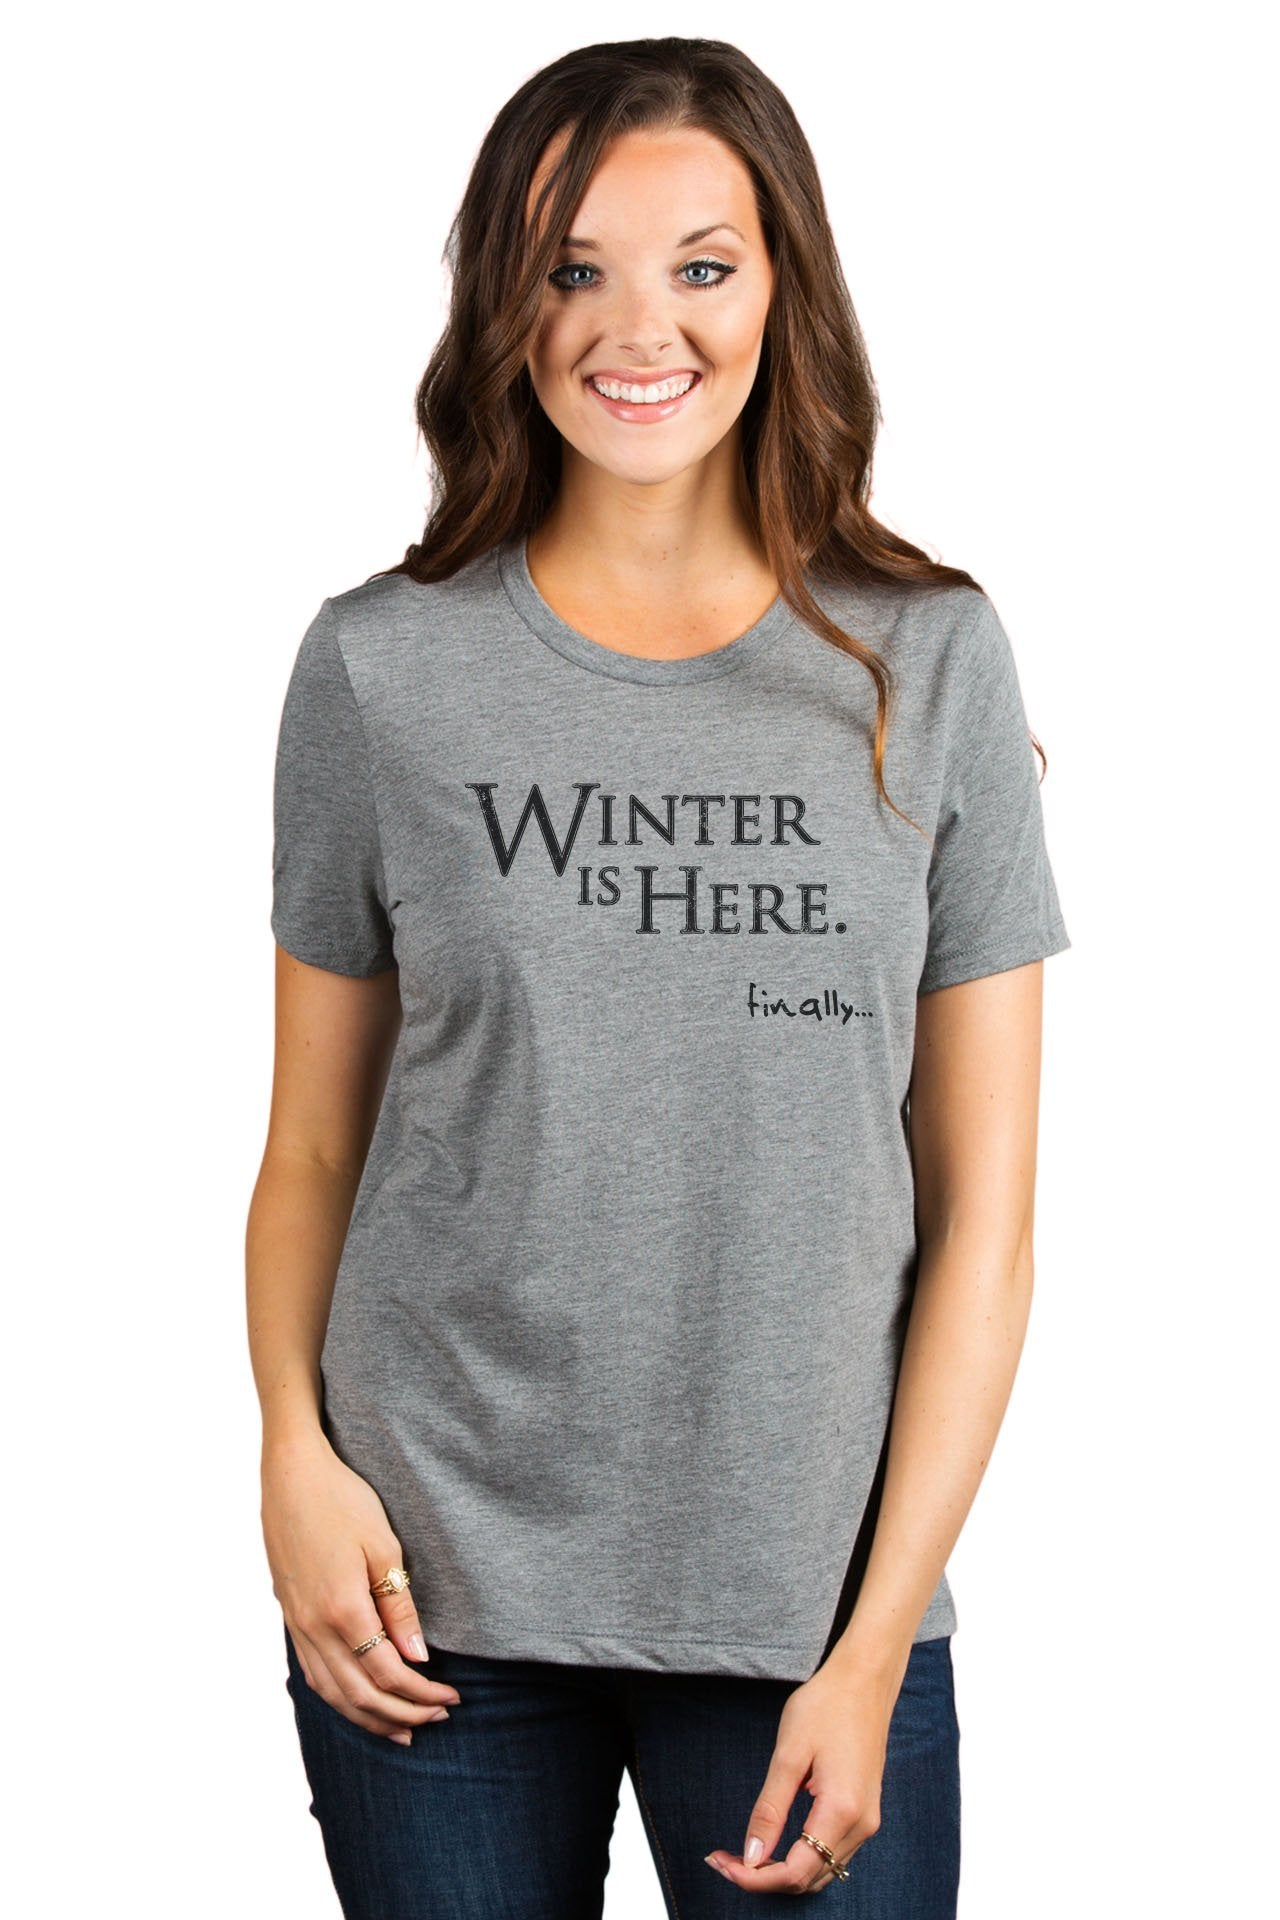 Winter Is Here Women's Relaxed Crewneck T-Shirt Top Tee Heather Grey